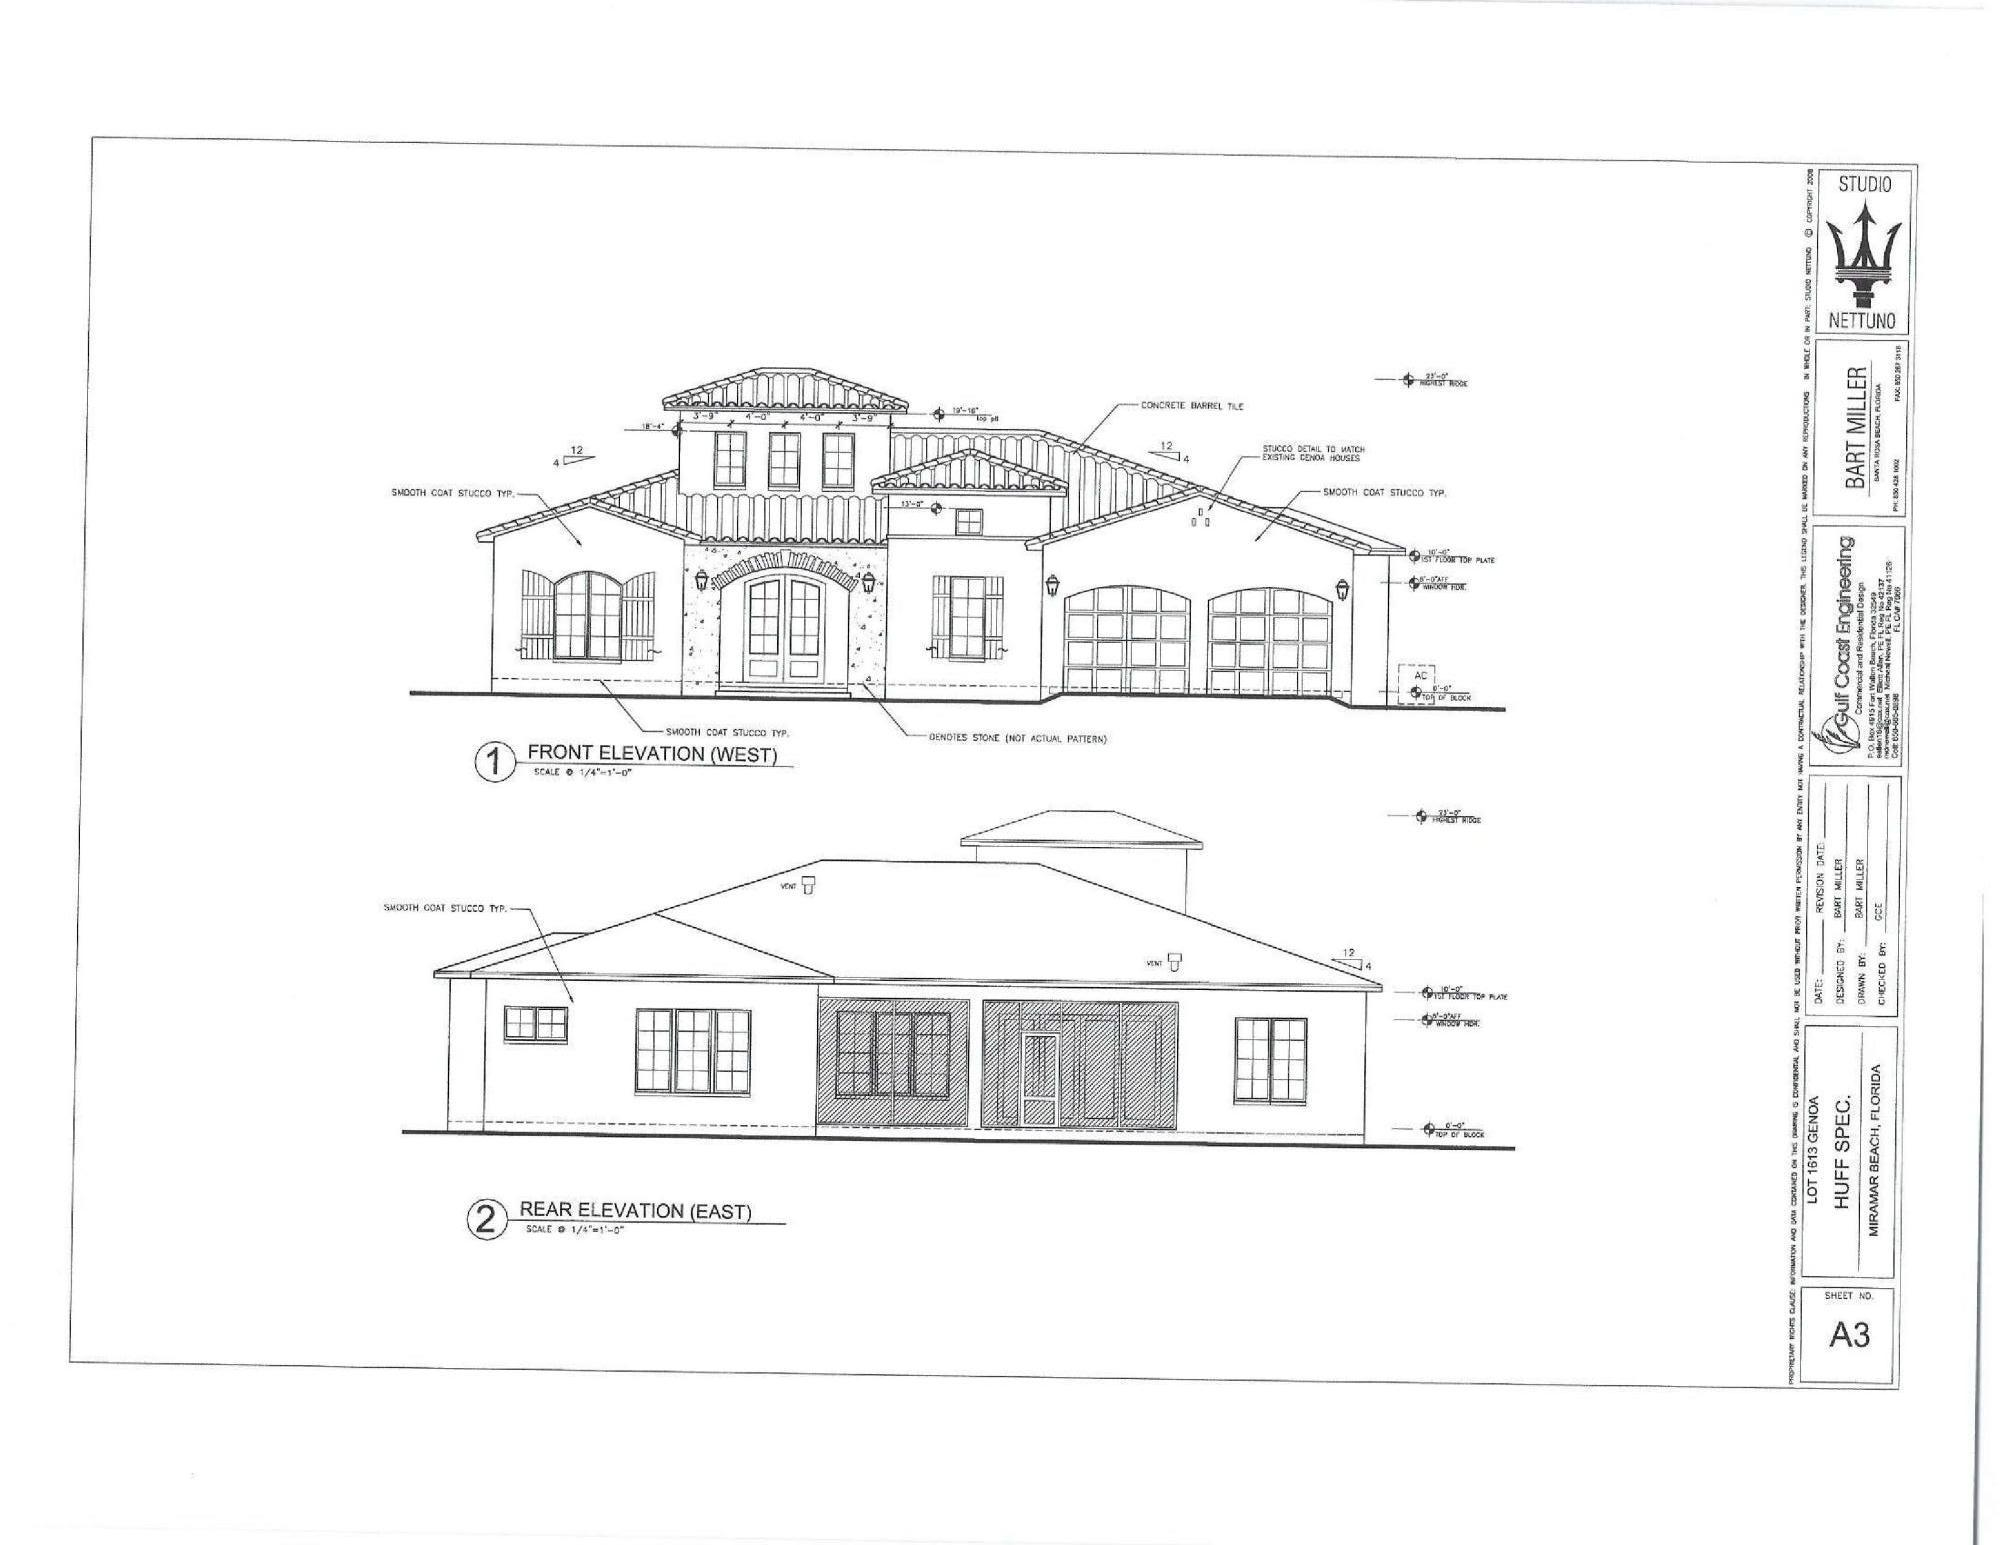 NEW HUFF HOMES OF FLORIDA 1 STORY HOME UNDER CONSTRUCTION ON THE RAVEN GOLF COURSE AT SANDESTIN GOLF